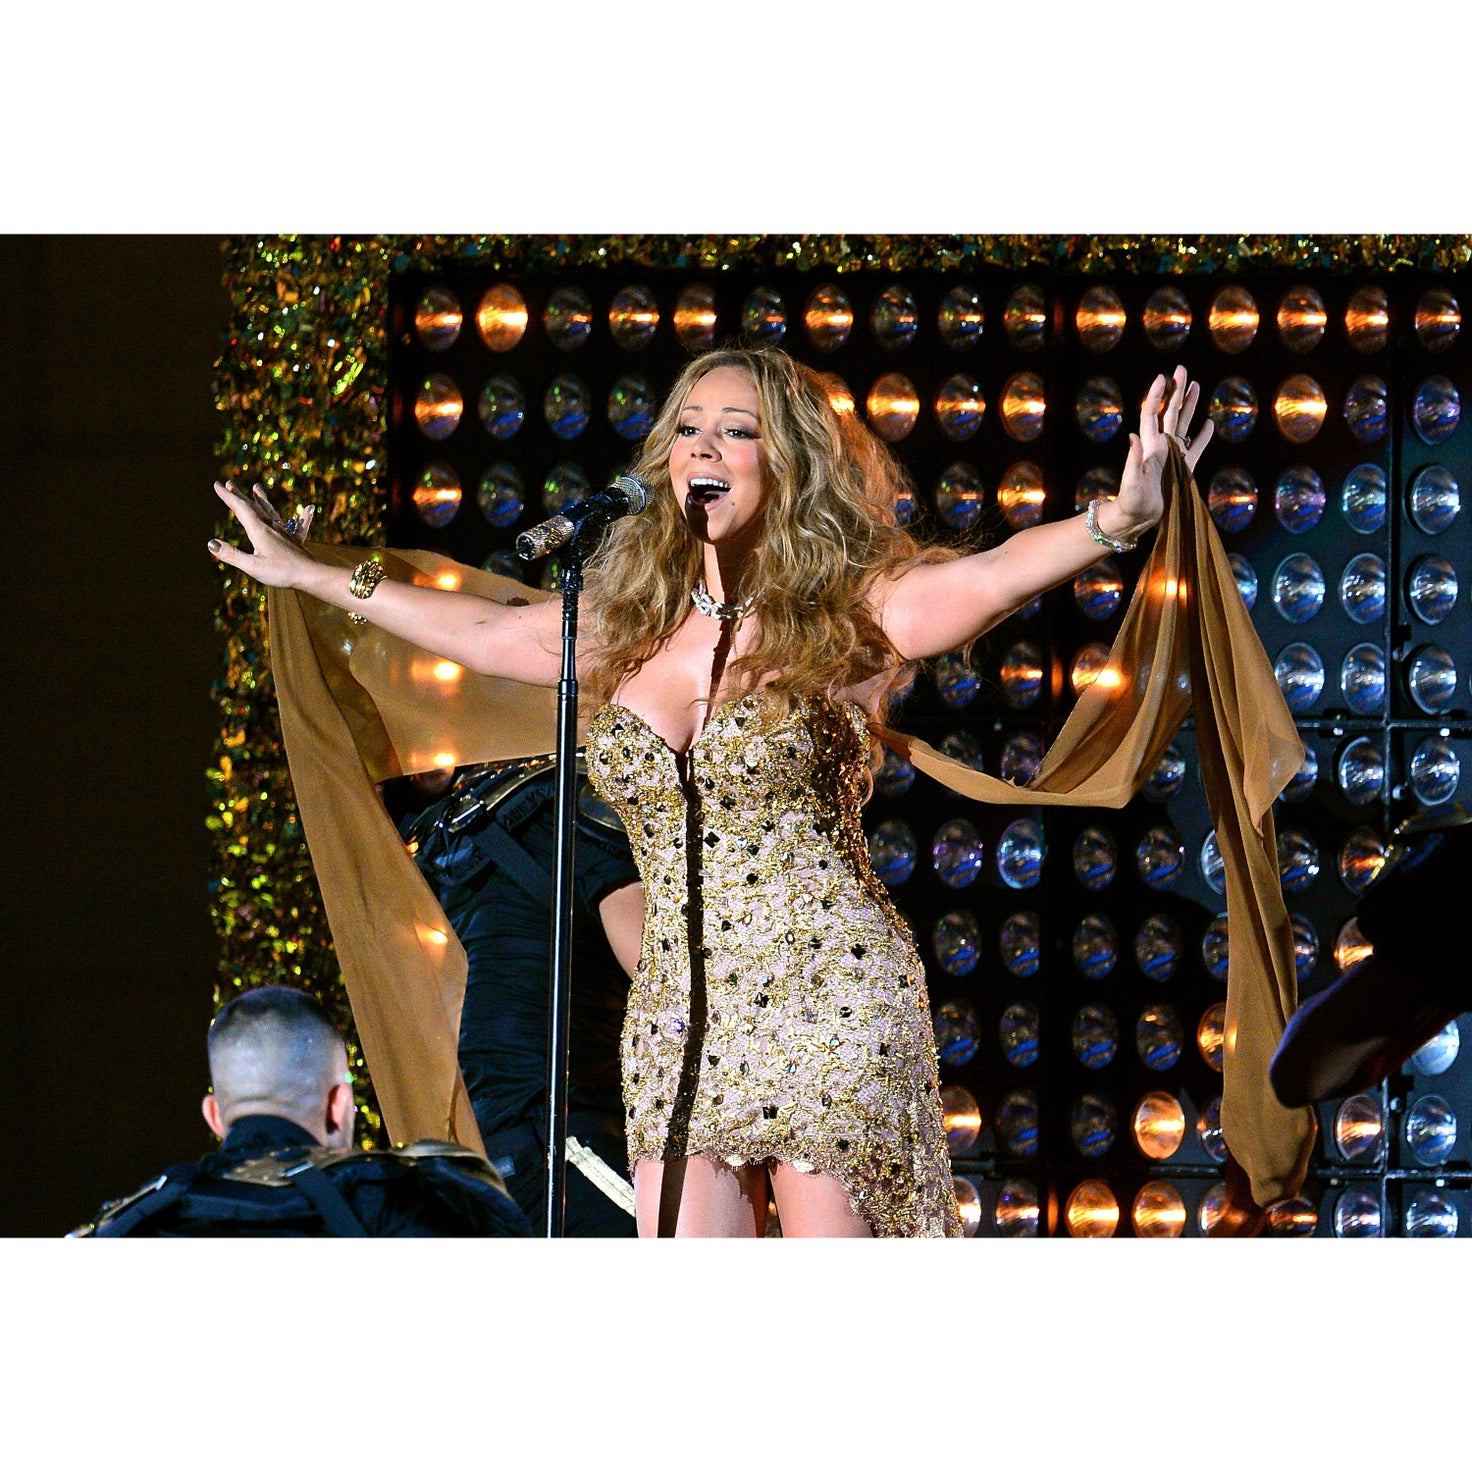 Take a Glimpse into Mariah Carey's World with Her New Reality Show